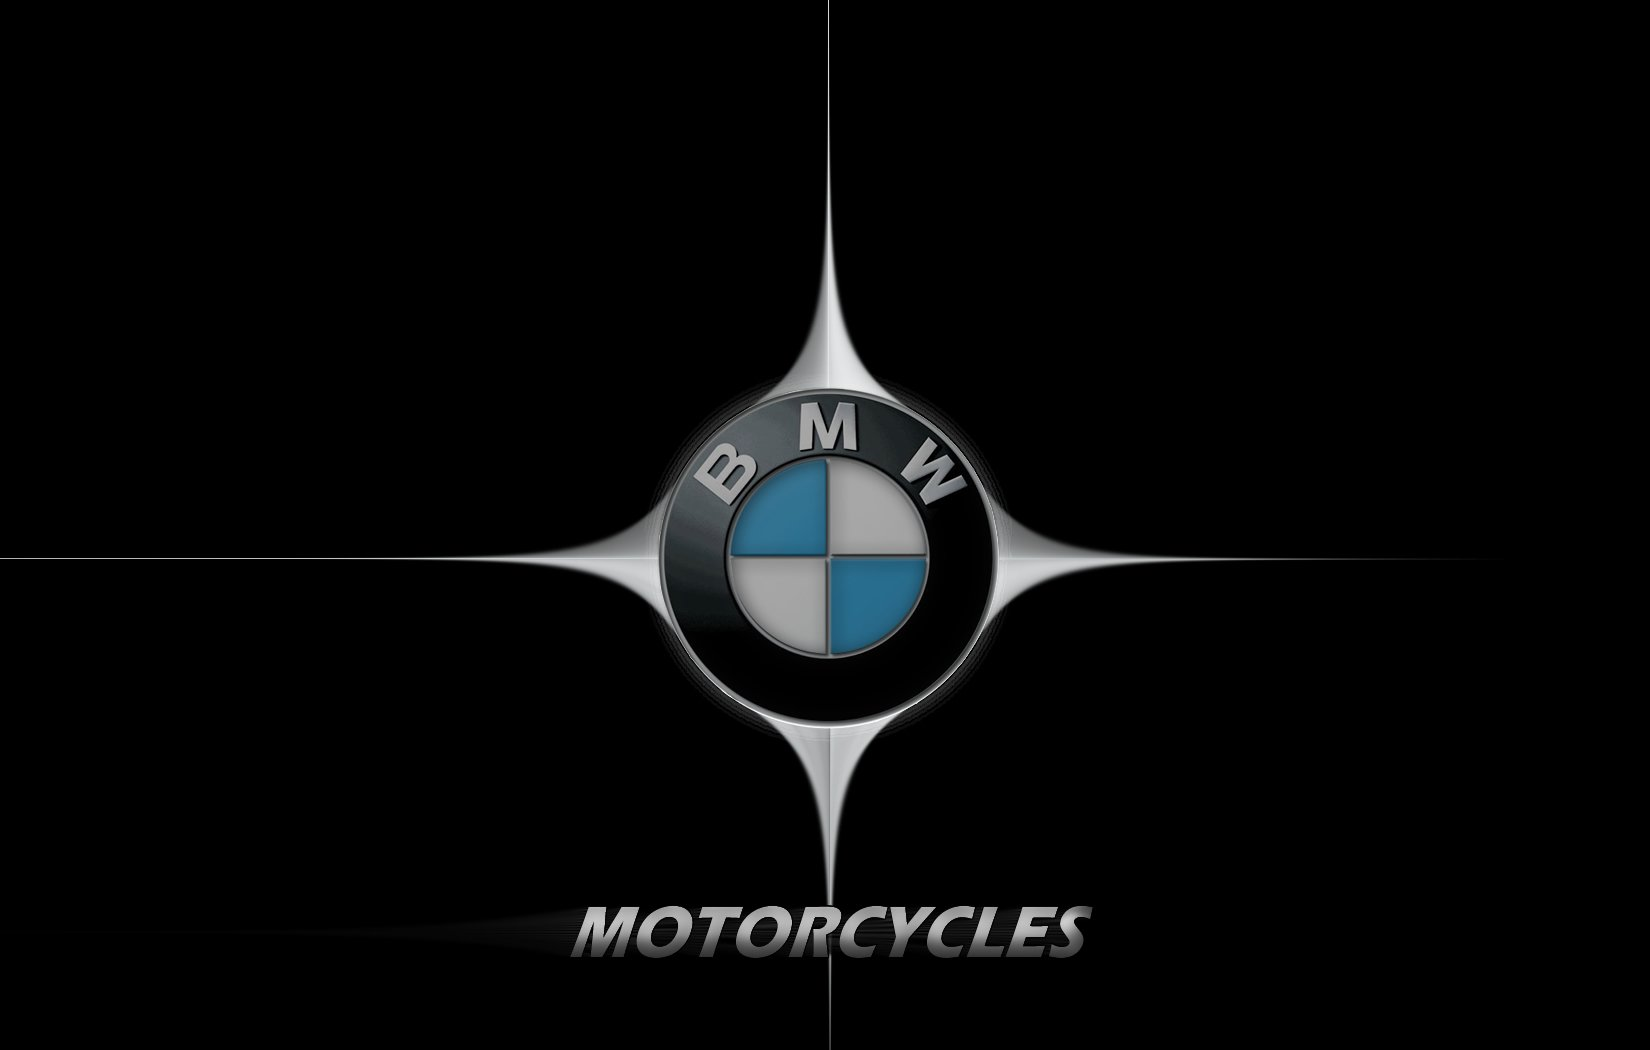 BMW Motorcycles Desktop Wallpapers - WallpaperSafari